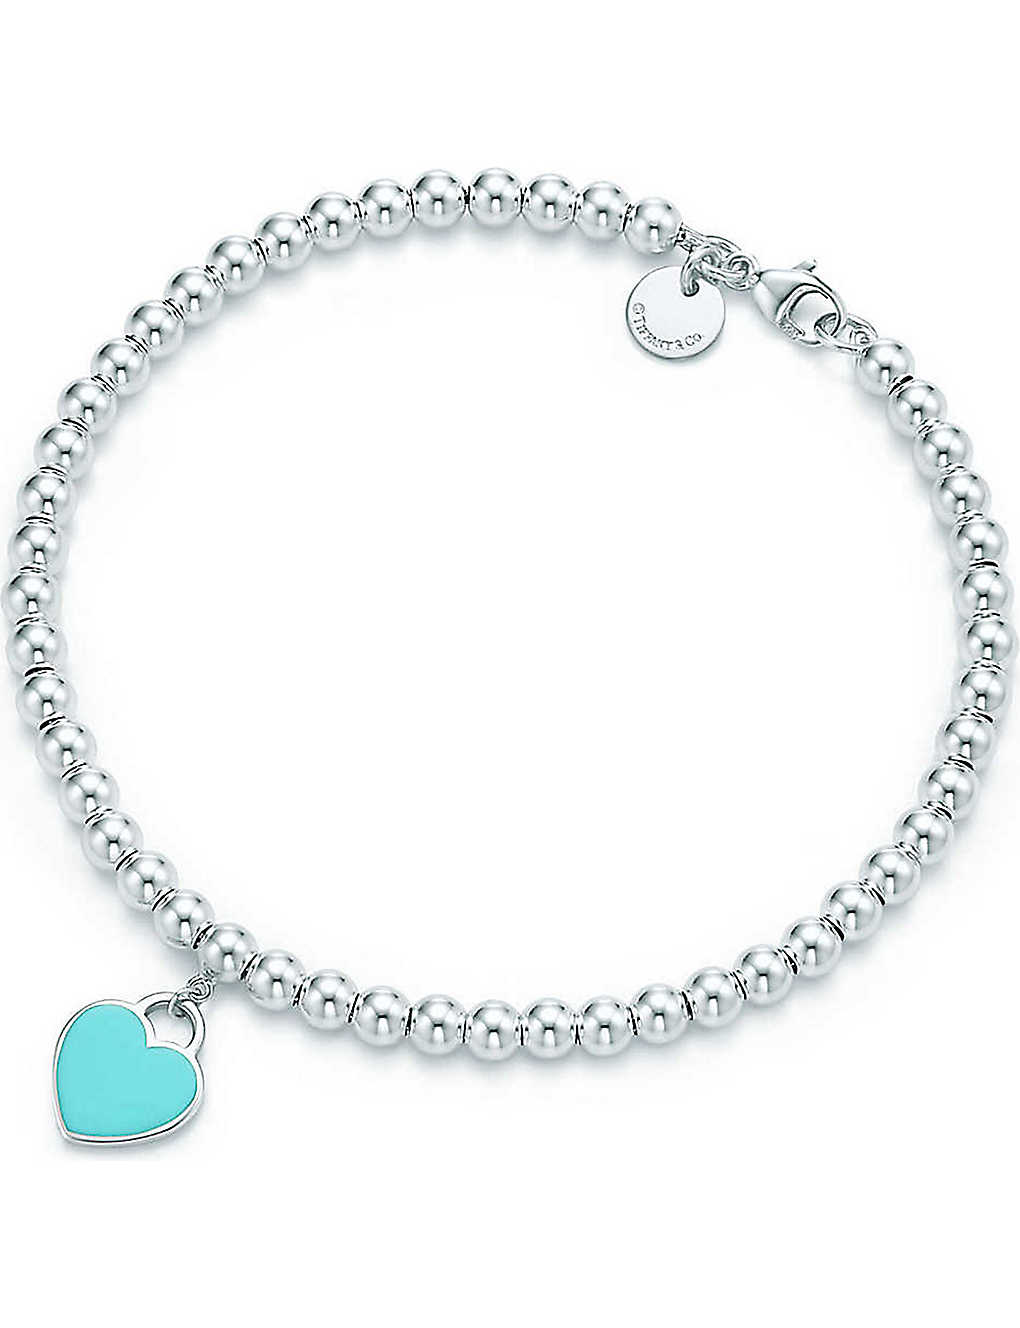 ab0c06910837 TIFFANY   CO - Return to Tiffany mini heart tag in sterling silver on a  bead bracelet